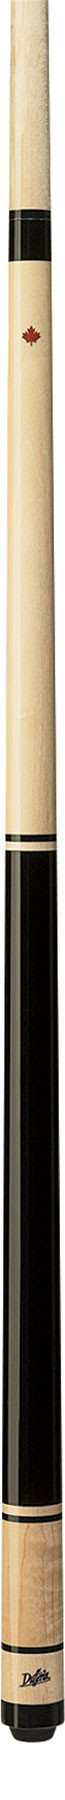 Dufferin D-901 Break & Jump Pool Cue Stick